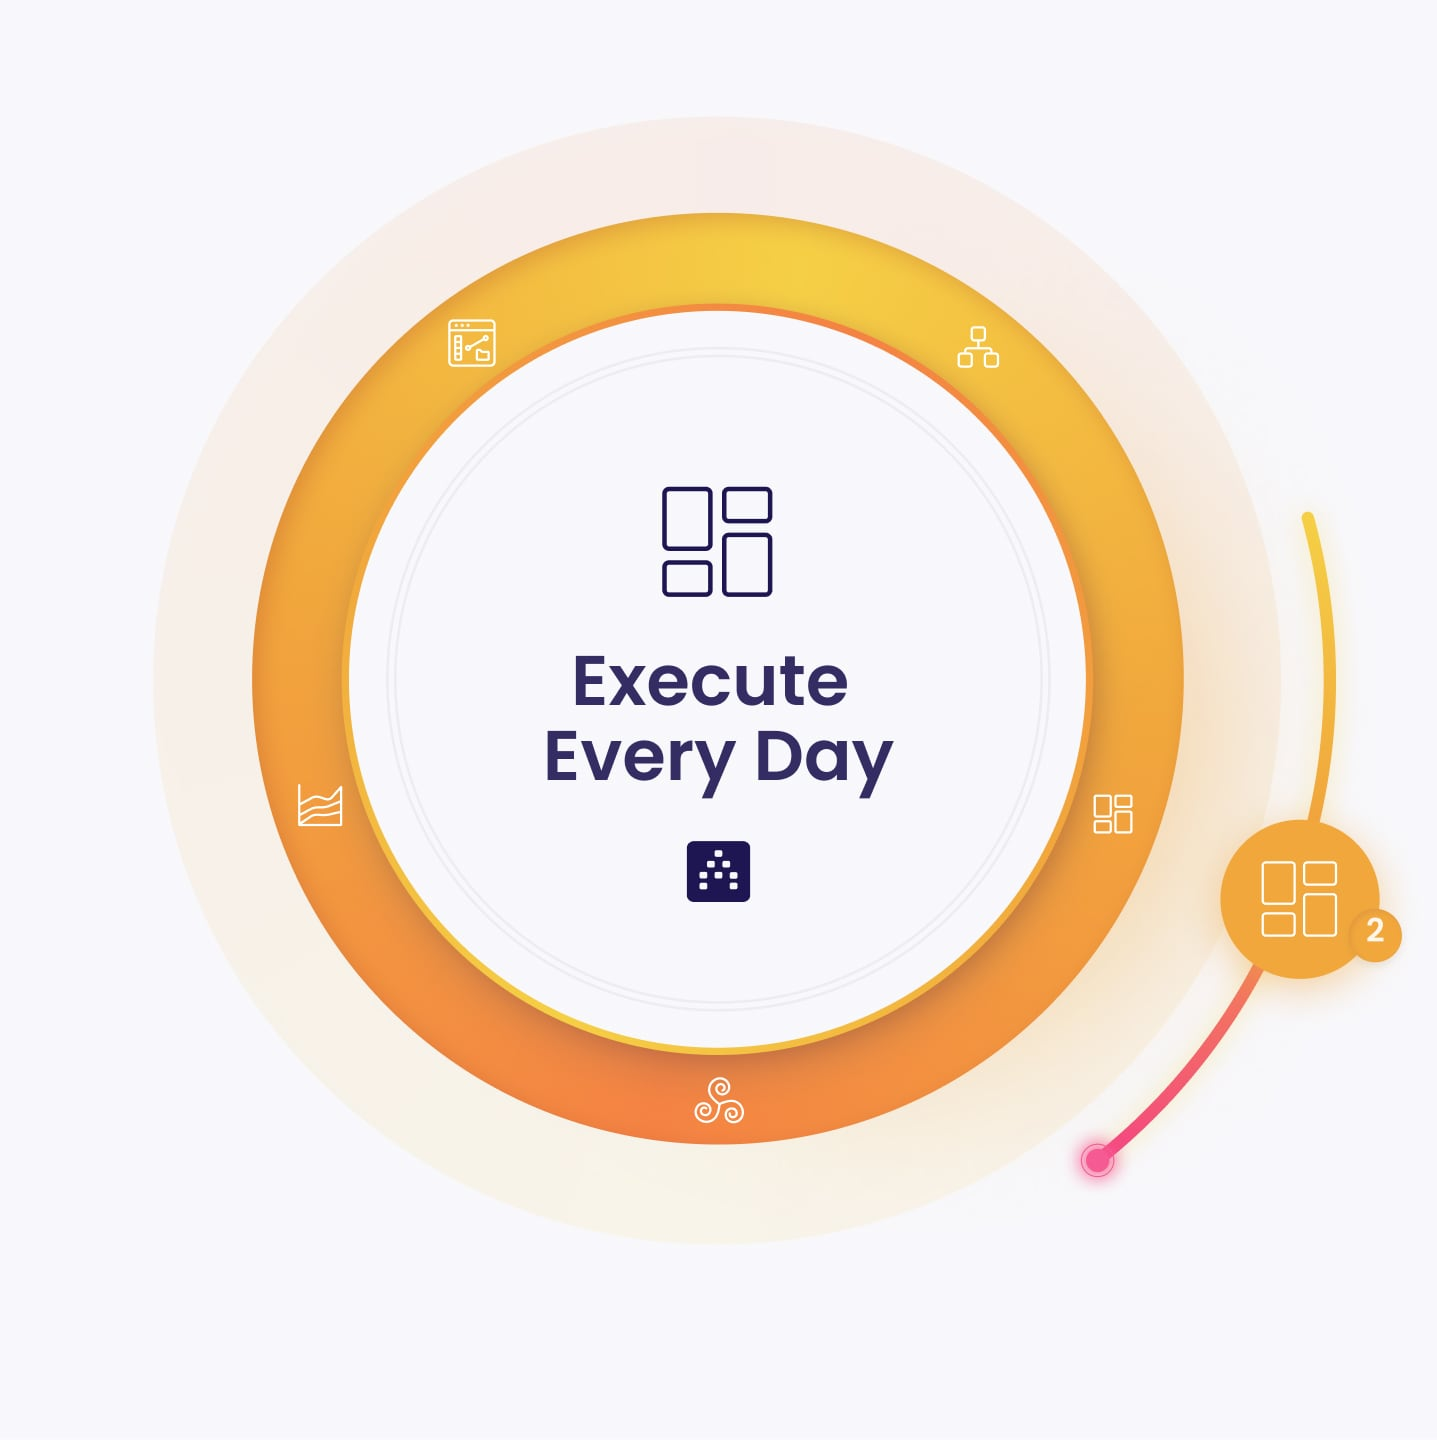 Strategy Framework - Execute Every Day